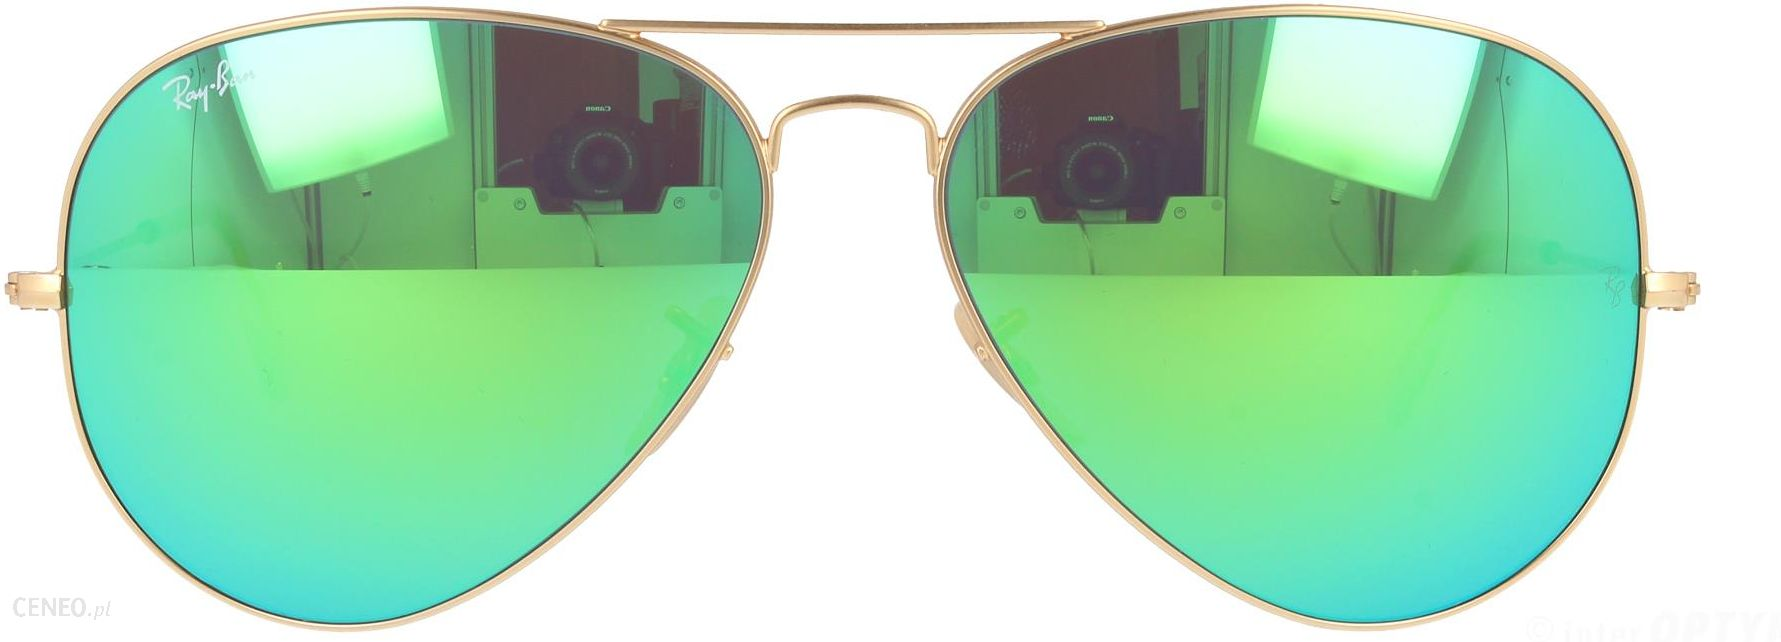 472024362eee5 Ray-Ban AVIATOR LARGE METAL RB3025 112 19 55 - Ceny i opinie - Ceneo.pl